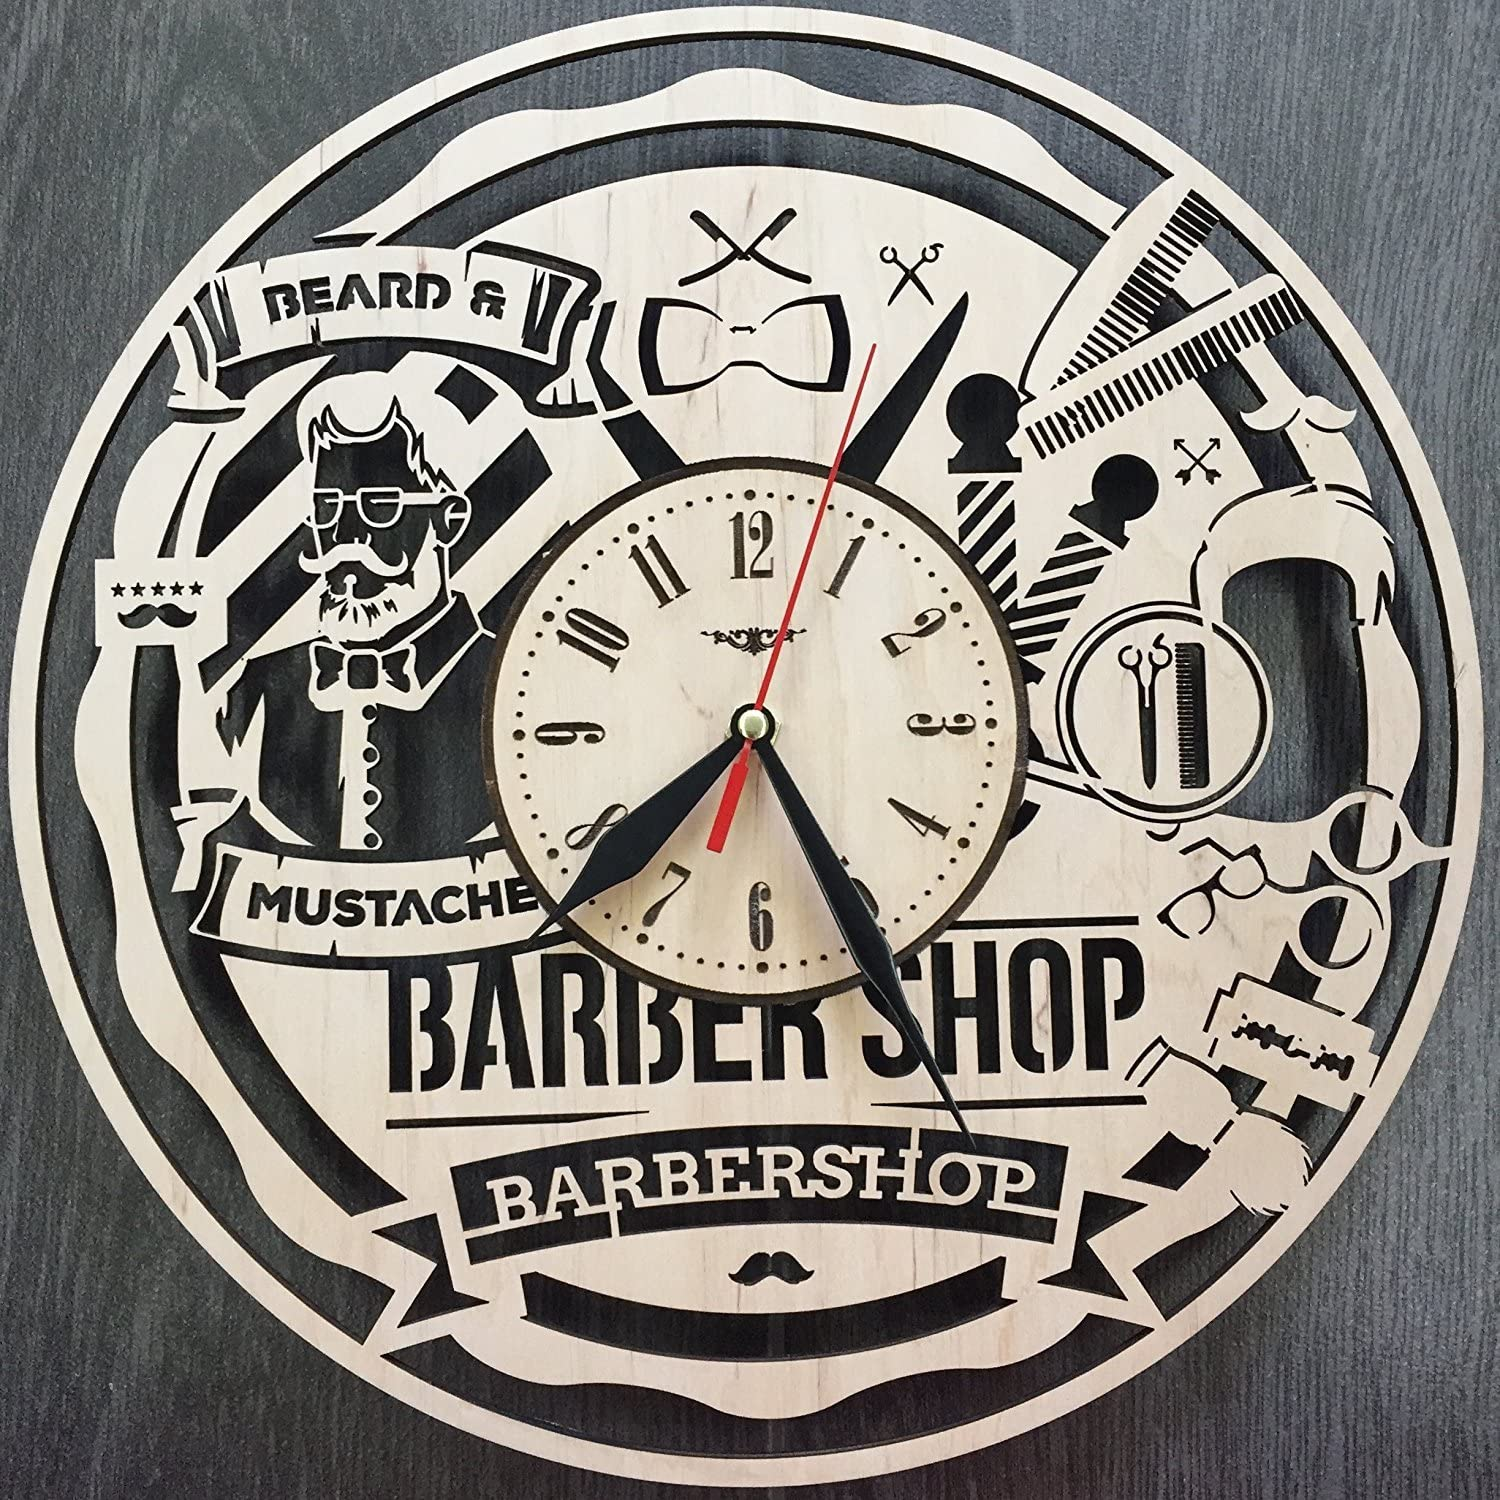 7ArtsStudio Man Style Barbershop Wall Clock Made of Wood - Perfect and Beautifully Cut - Decorate Your Home with Modern Art - Unique Gift for Him and Her - Size 12 Inches